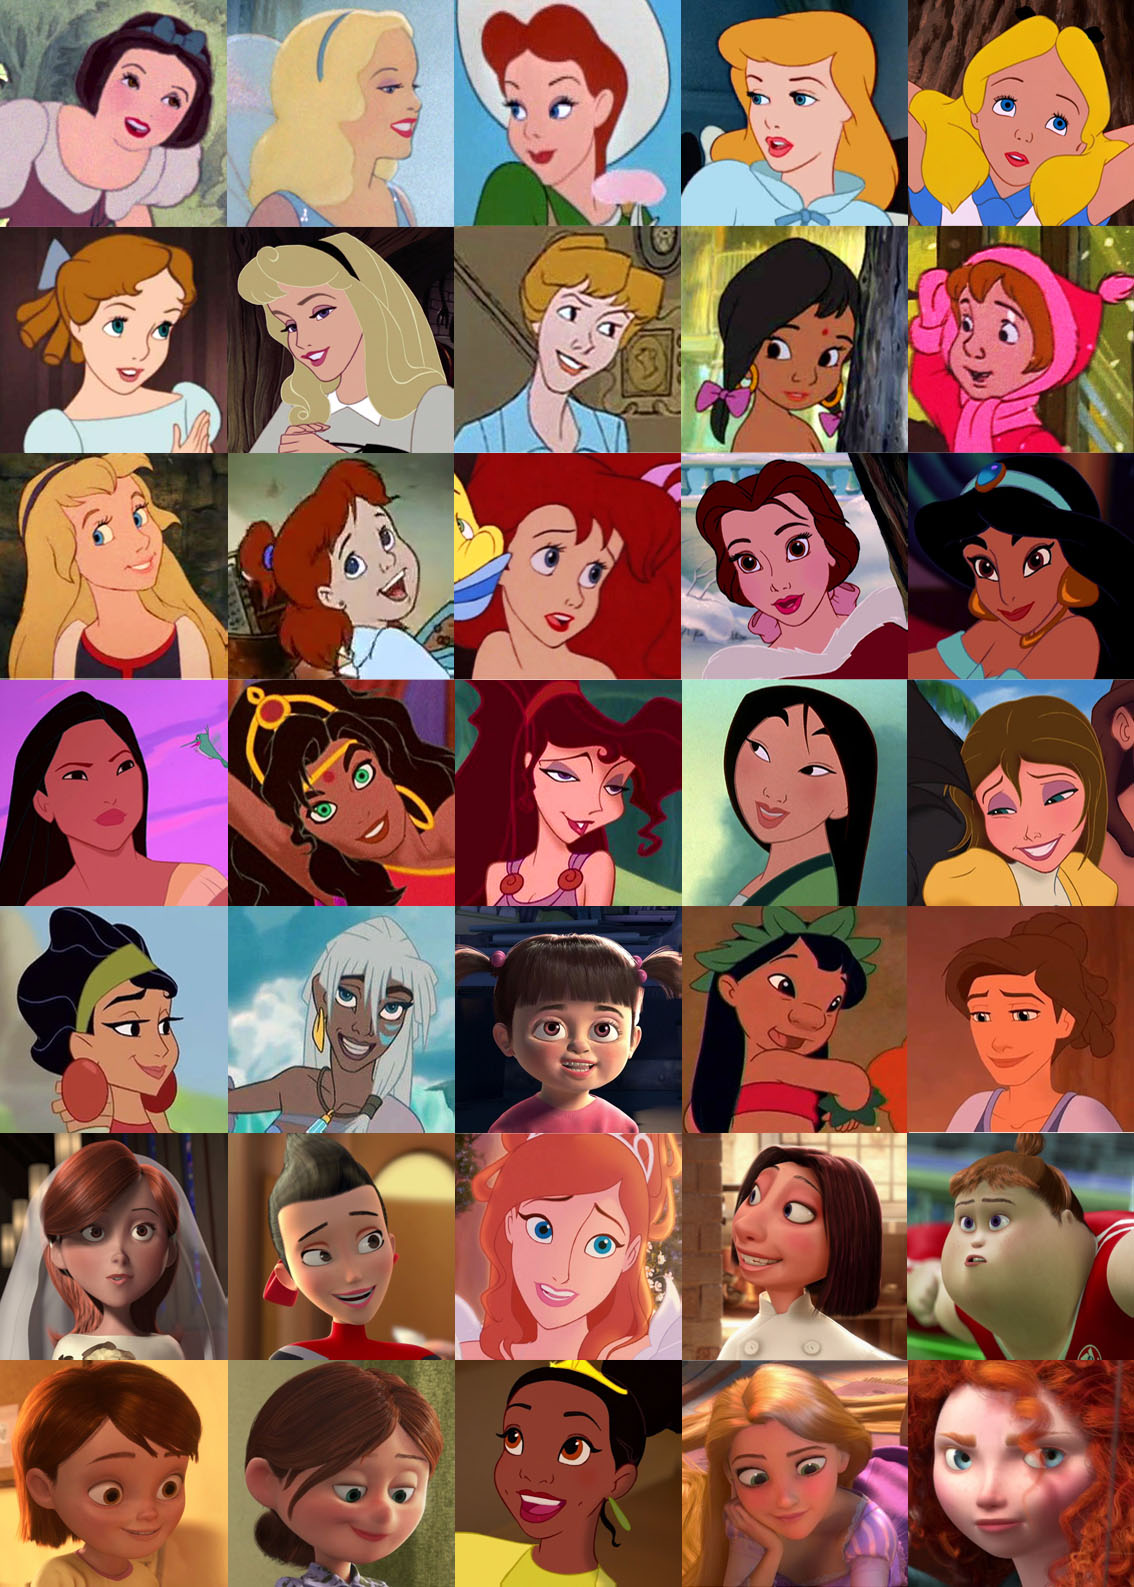 Disney human heroines from time to time